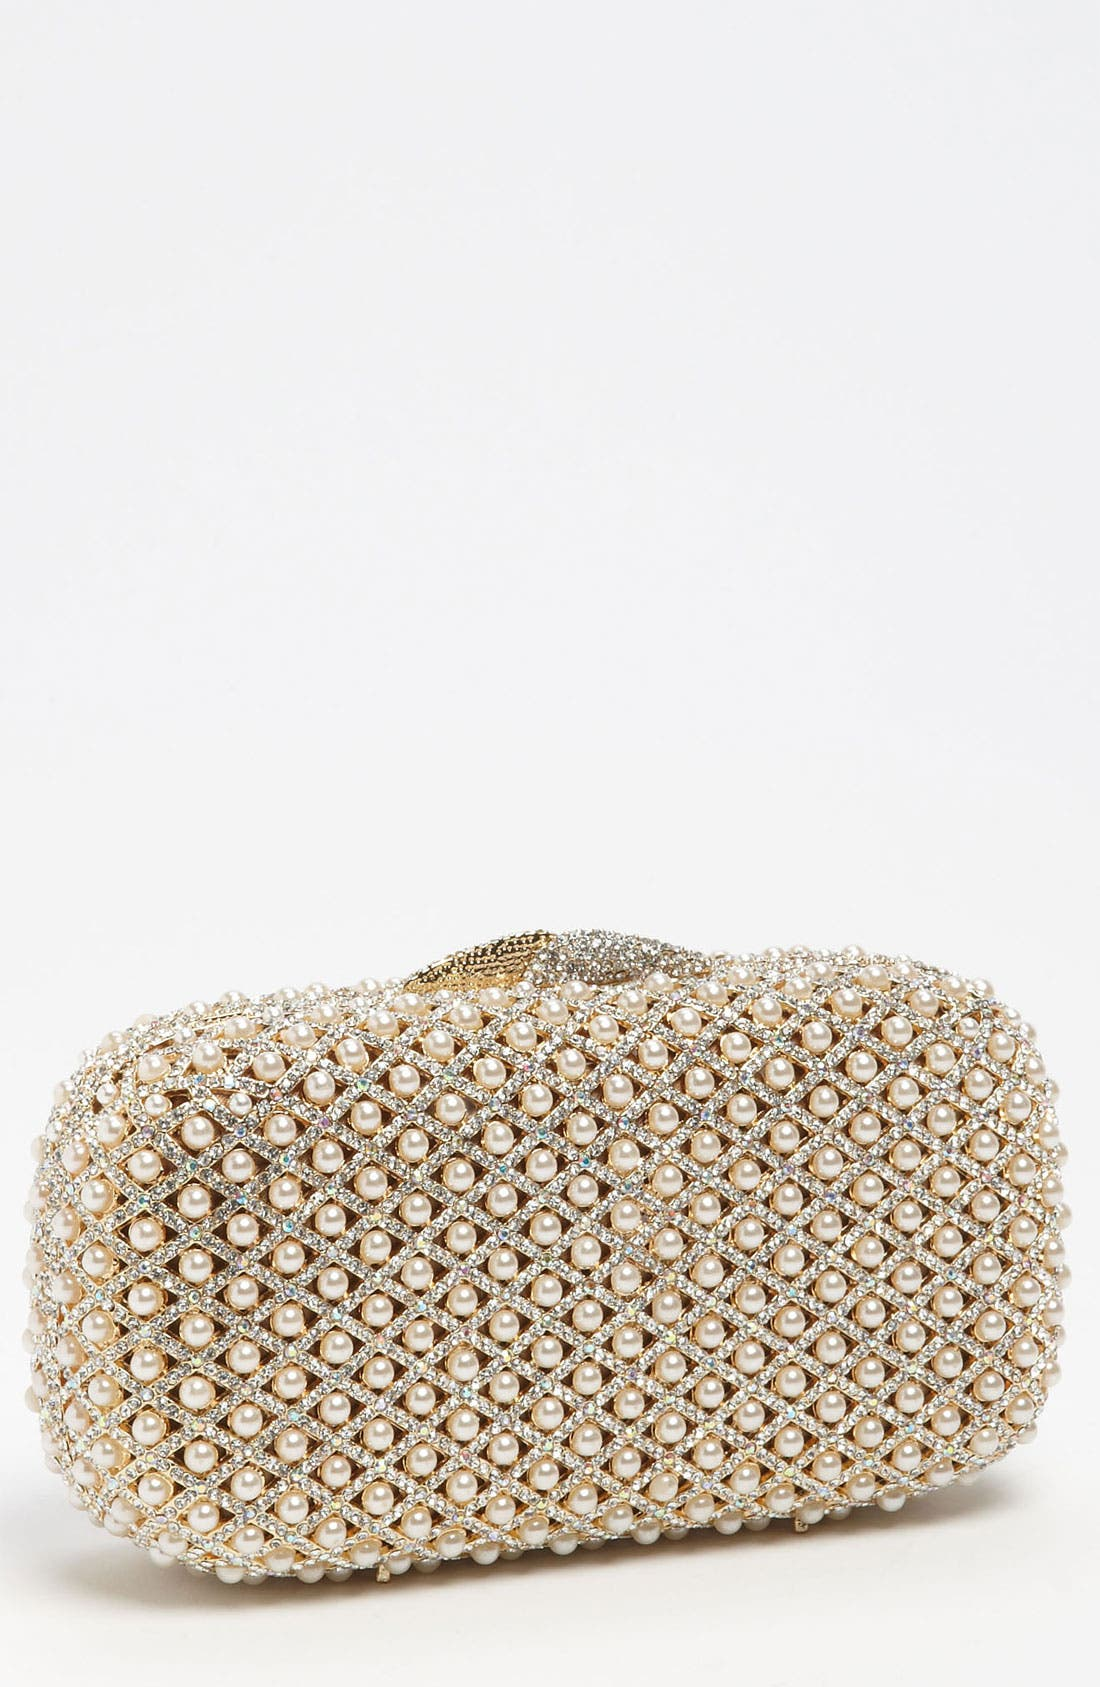 Alternate Image 1 Selected - Natasha Couture Pearl Caged Clutch